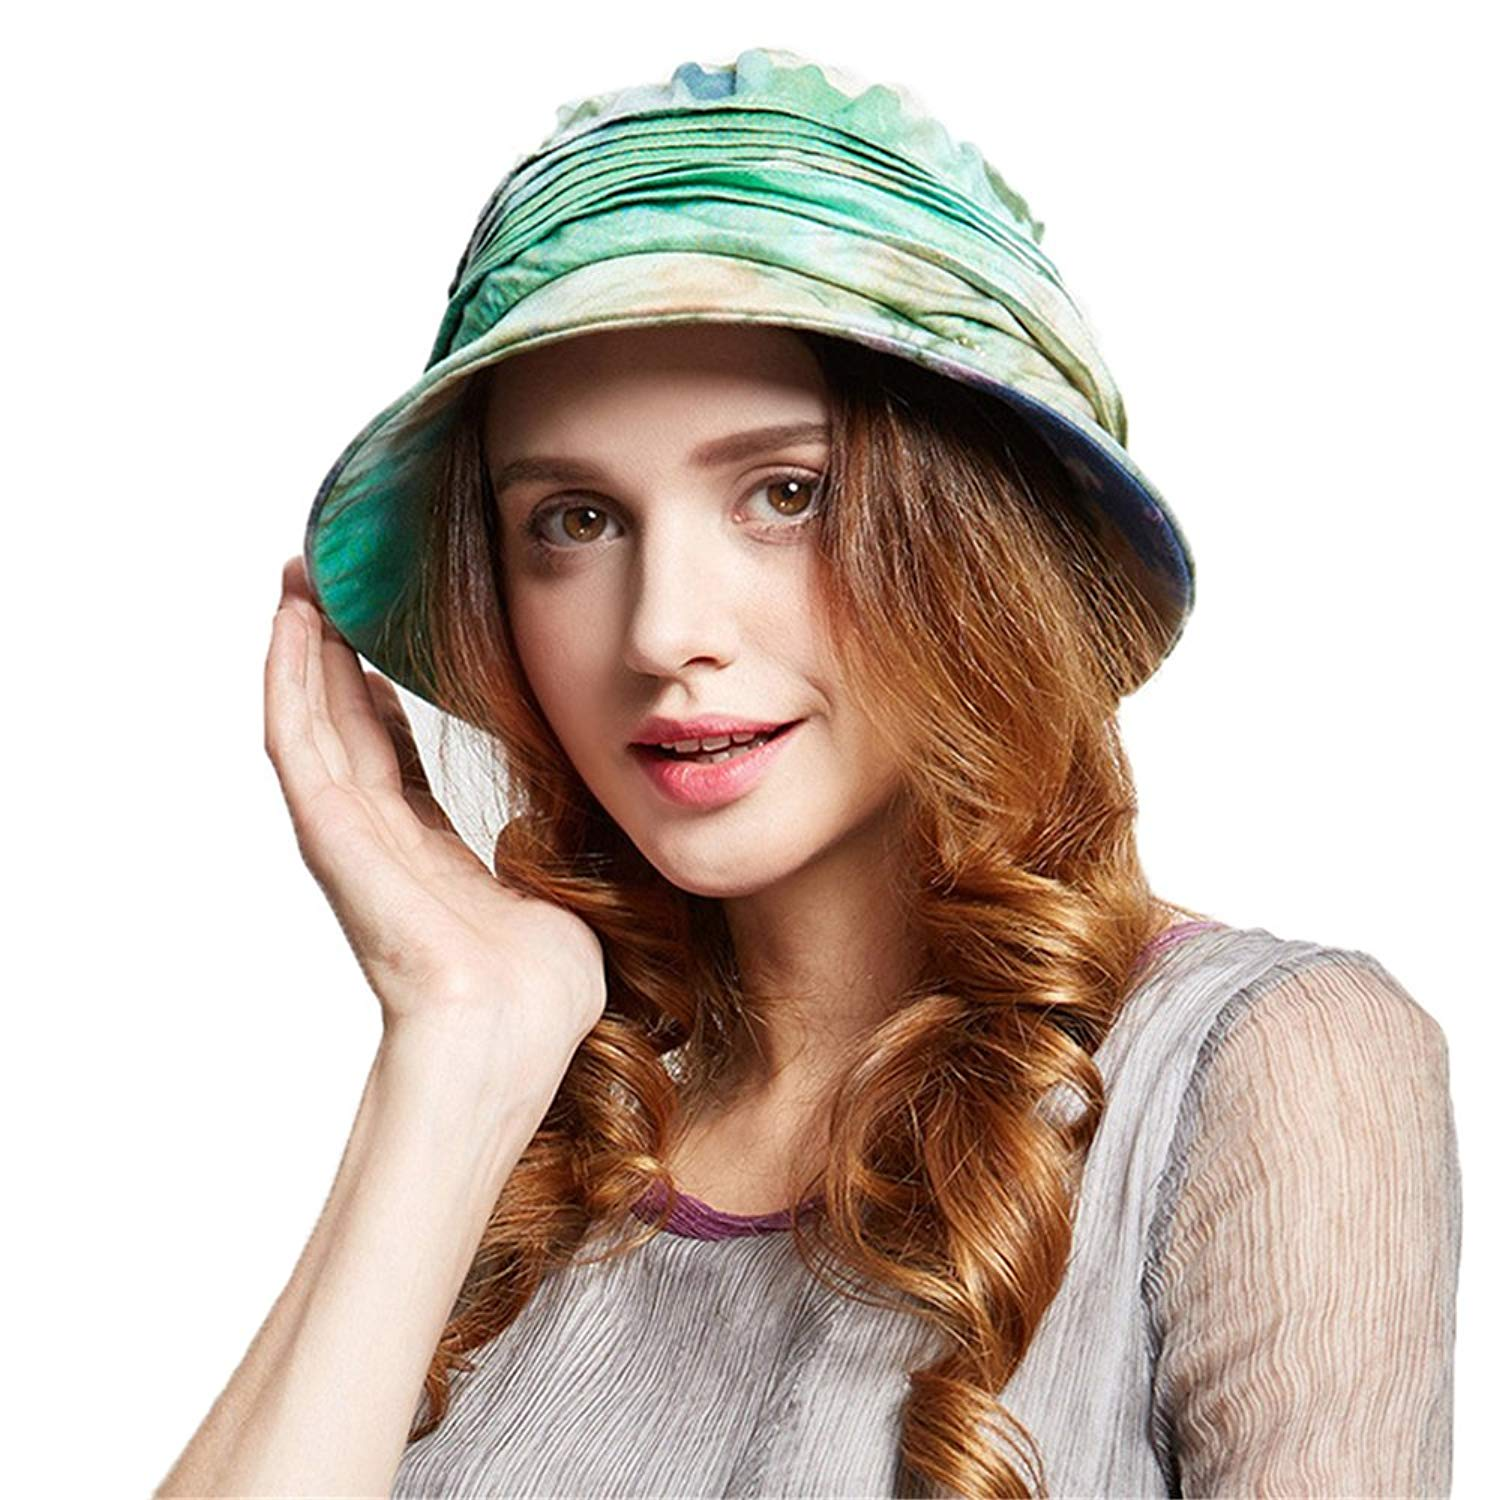 0034ab8a39a Get Quotations · doublebulls hats Cloche Hats Ladies Girls Cotton Foldable  Spring Summer Bucket Sun Hat